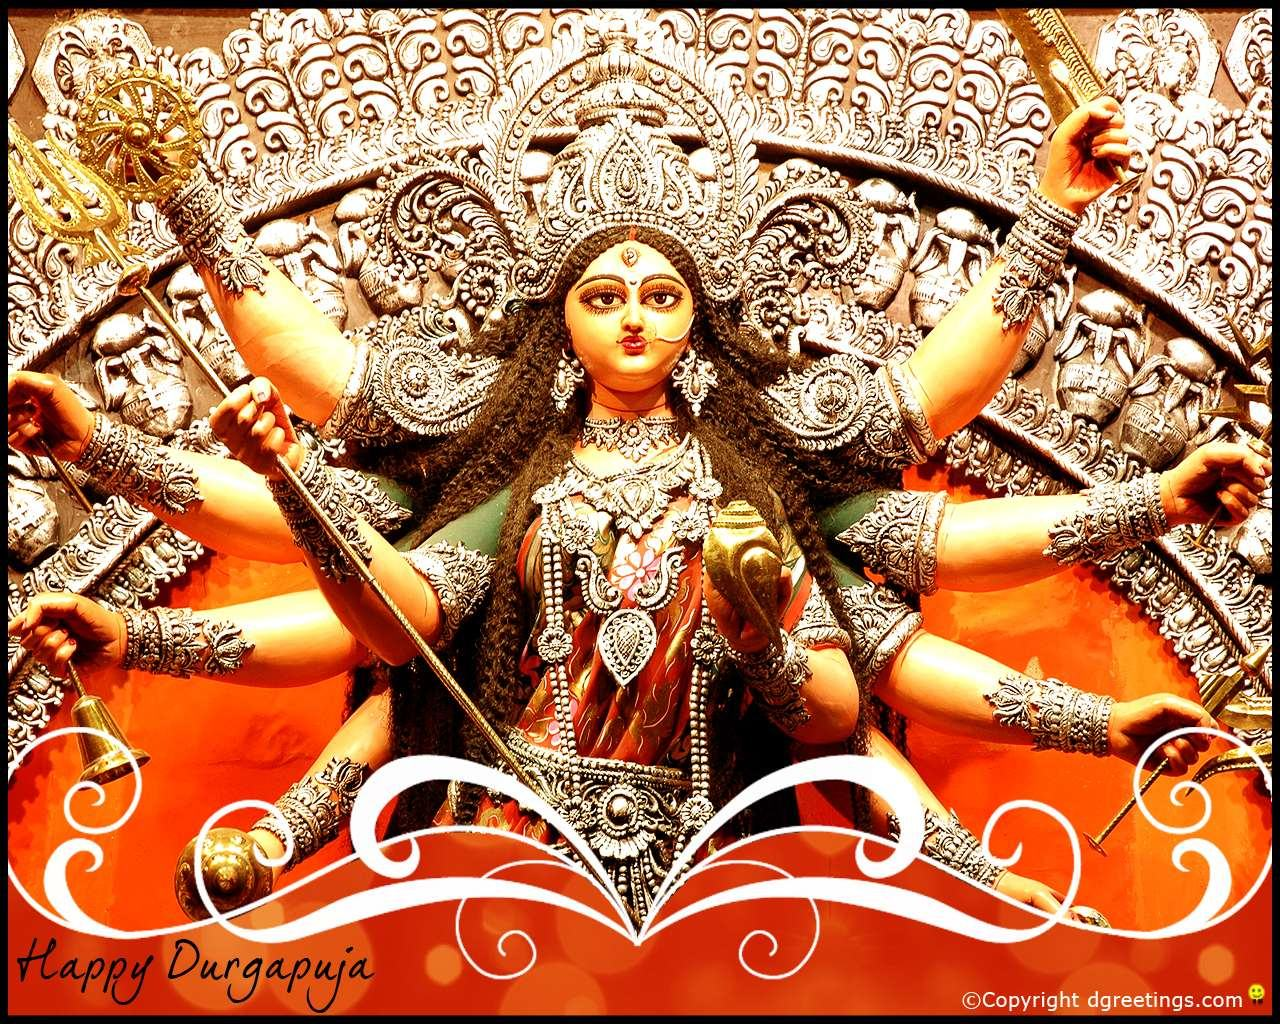 Happy Durga Puja Download HD wallpapers Rocking